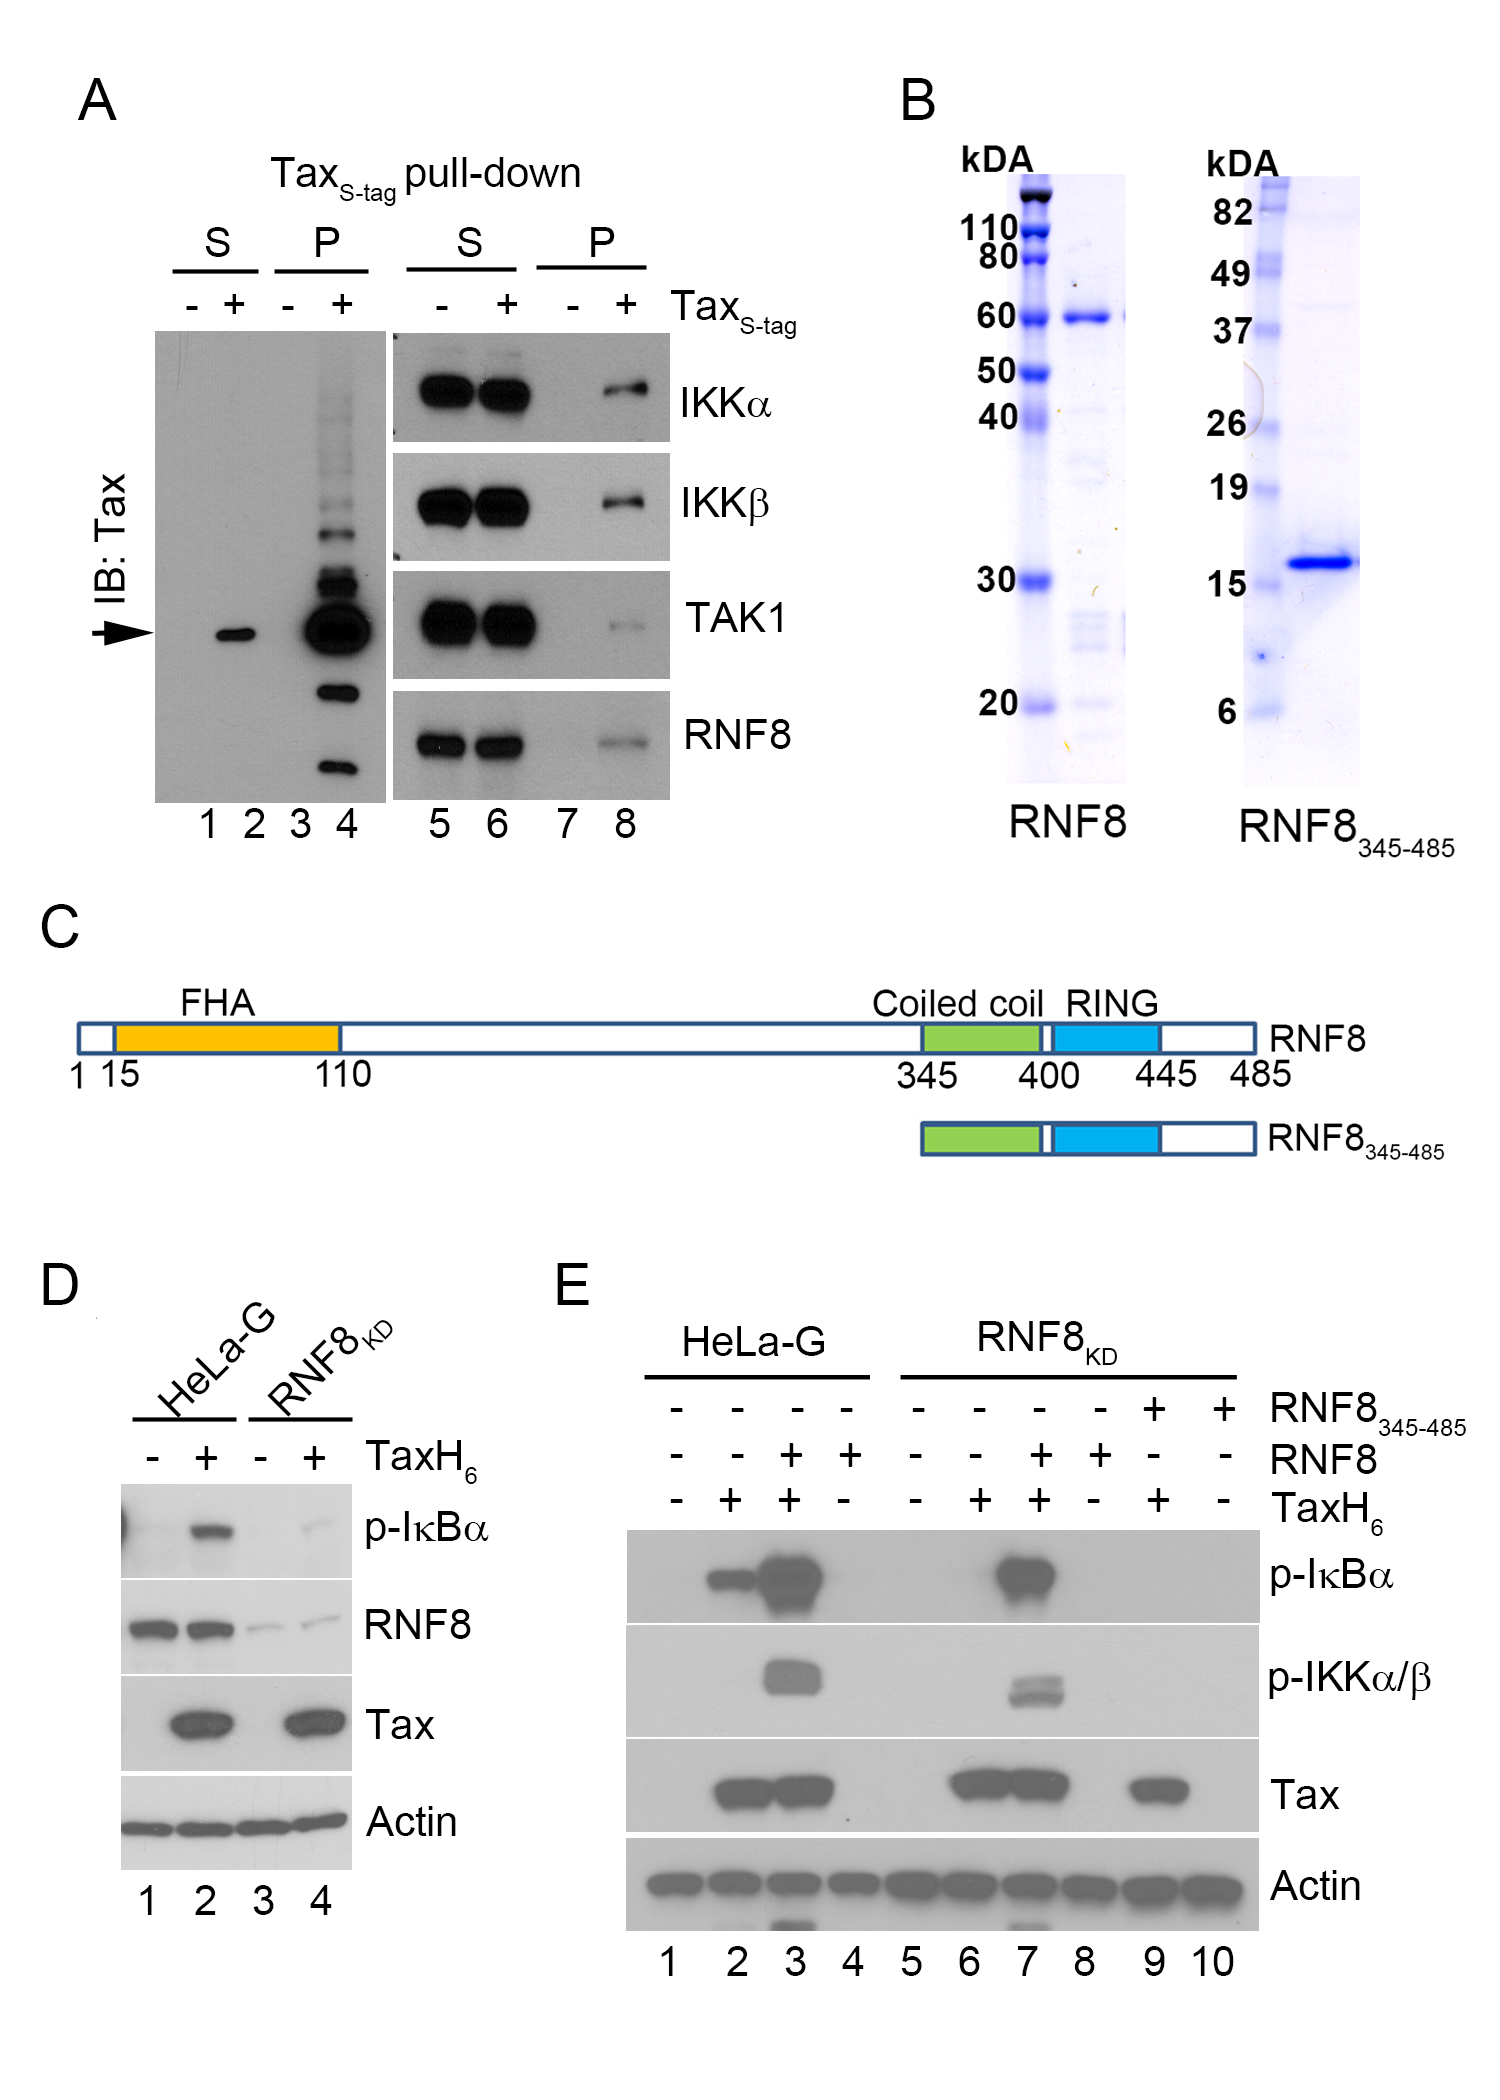 The E3 ubiquitin ligase, RNF8, supports IKK activation by Tax <i>in vi</i>tro.